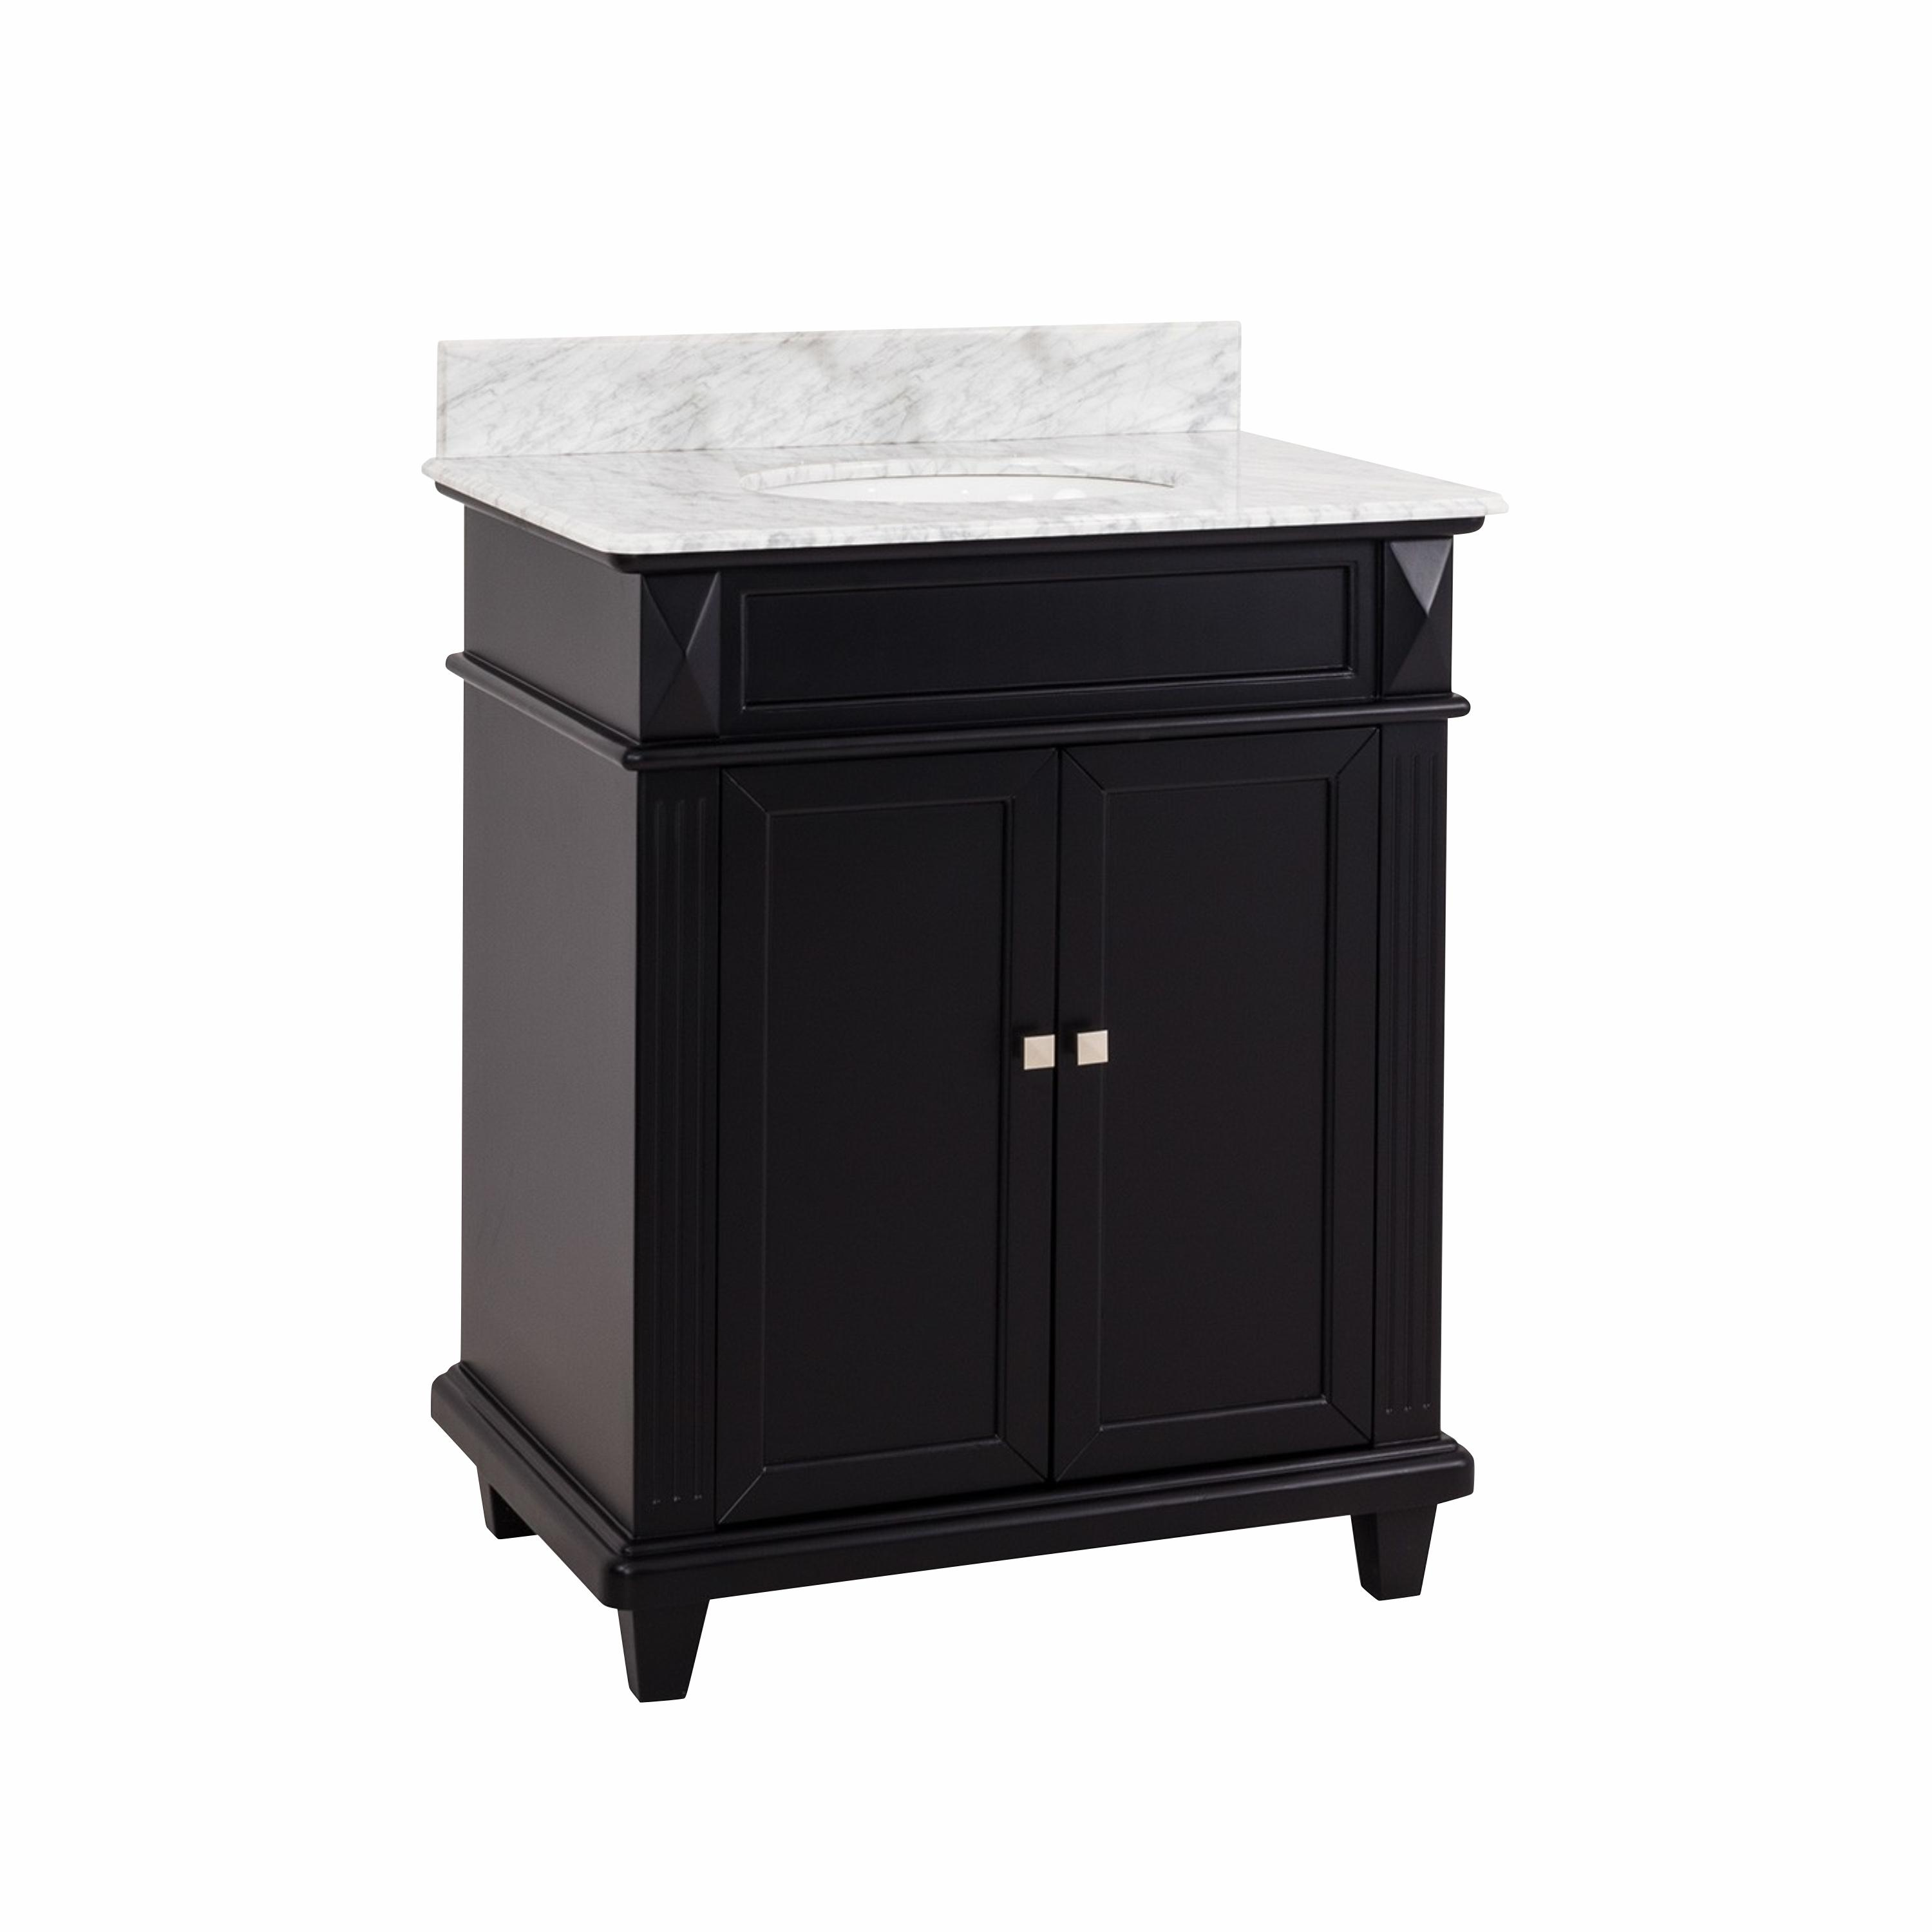 A Modern Living Room, Elements Douglas Black 30 Bathroom Vanity Cabinet With White Marble Countertop And Sink Bowl